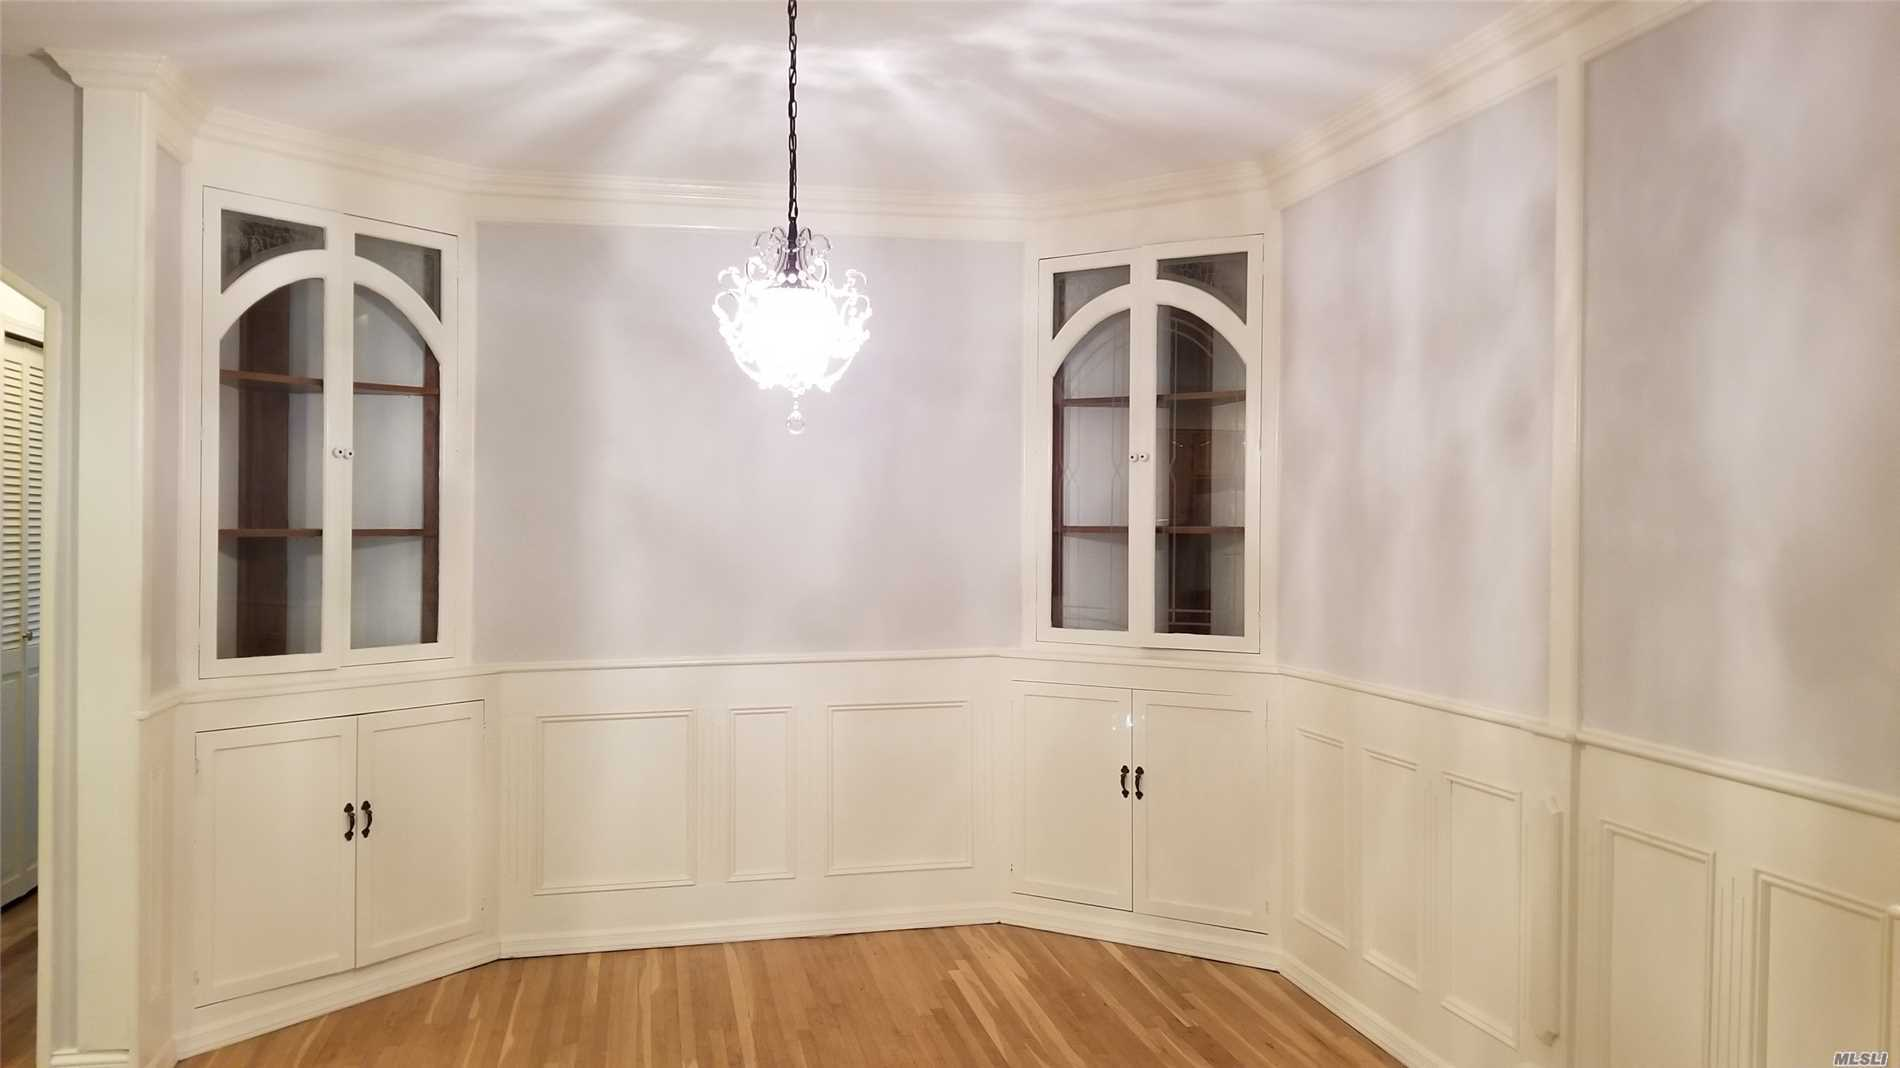 New Renovated, Hard Wood Floor, Large Master Bedroom, Plenty Of Closets, Near To Lirr, Restaurant, School District 26. Inc. Heat